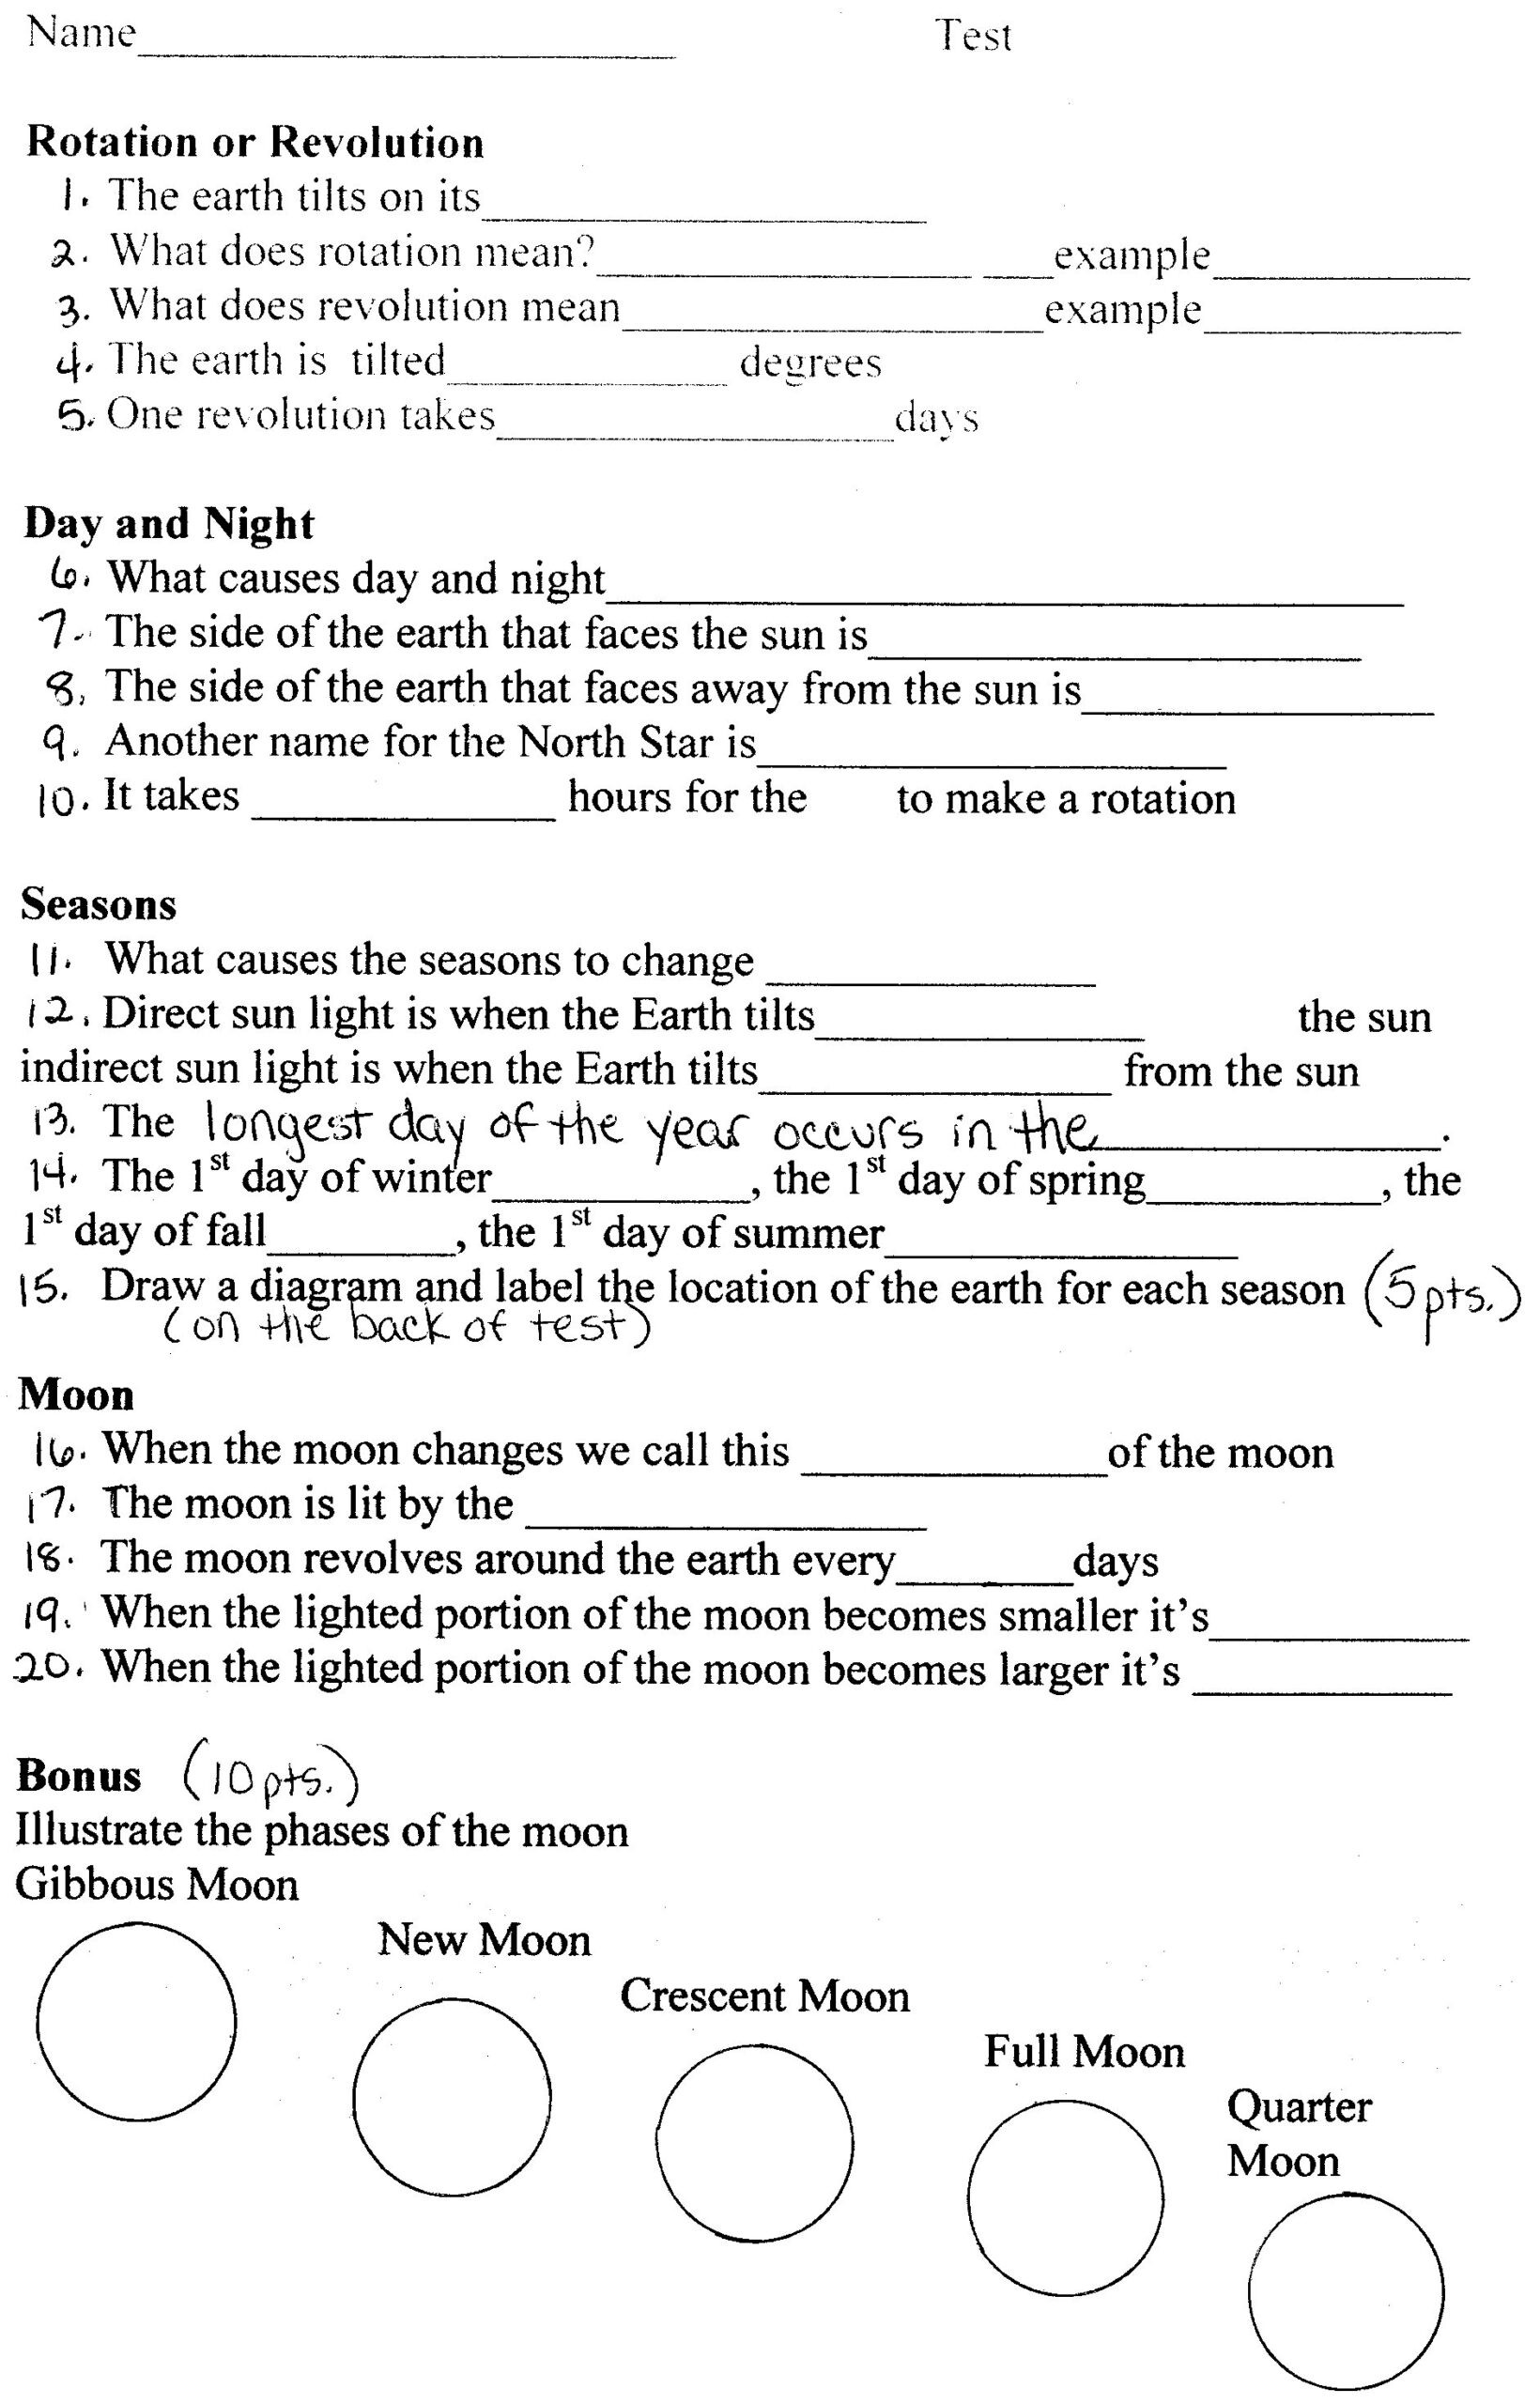 Moon Phases Worksheet 5th Grade Earth Science Materials Worksheets Middle School